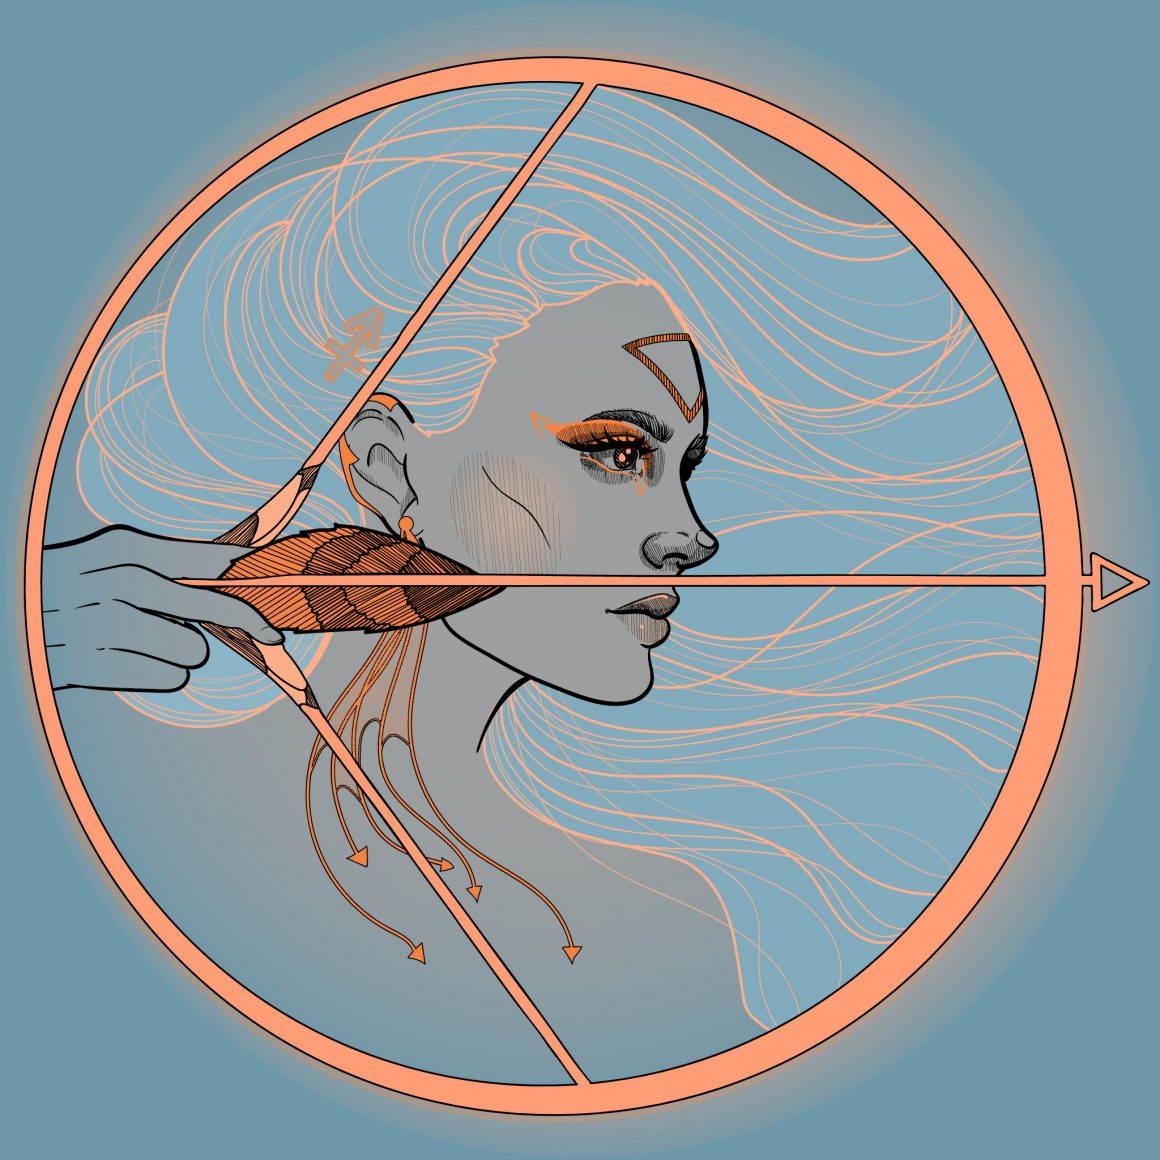 Most Compatible Star Signs for the Sagittarius Man